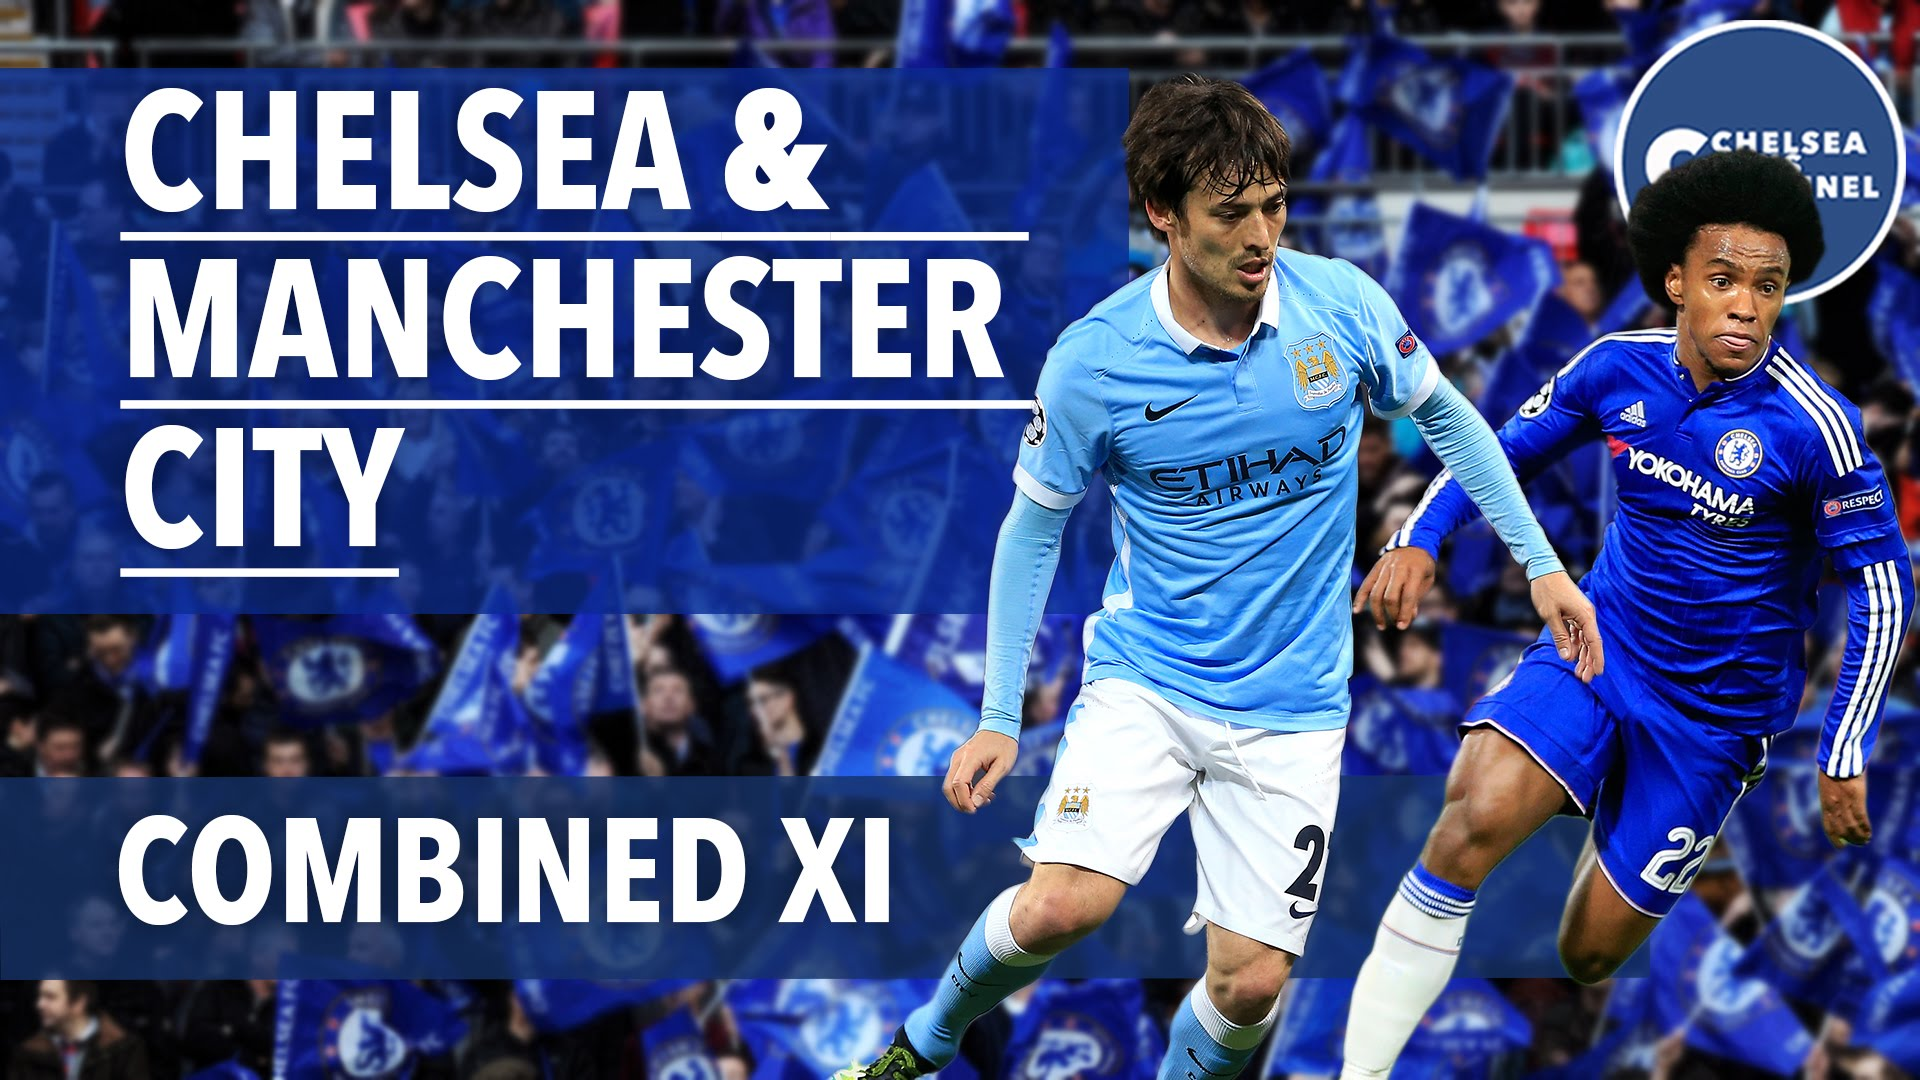 City Chelsea: Chelsea Vs Manchester City: Big Soccer Match Preview 2016